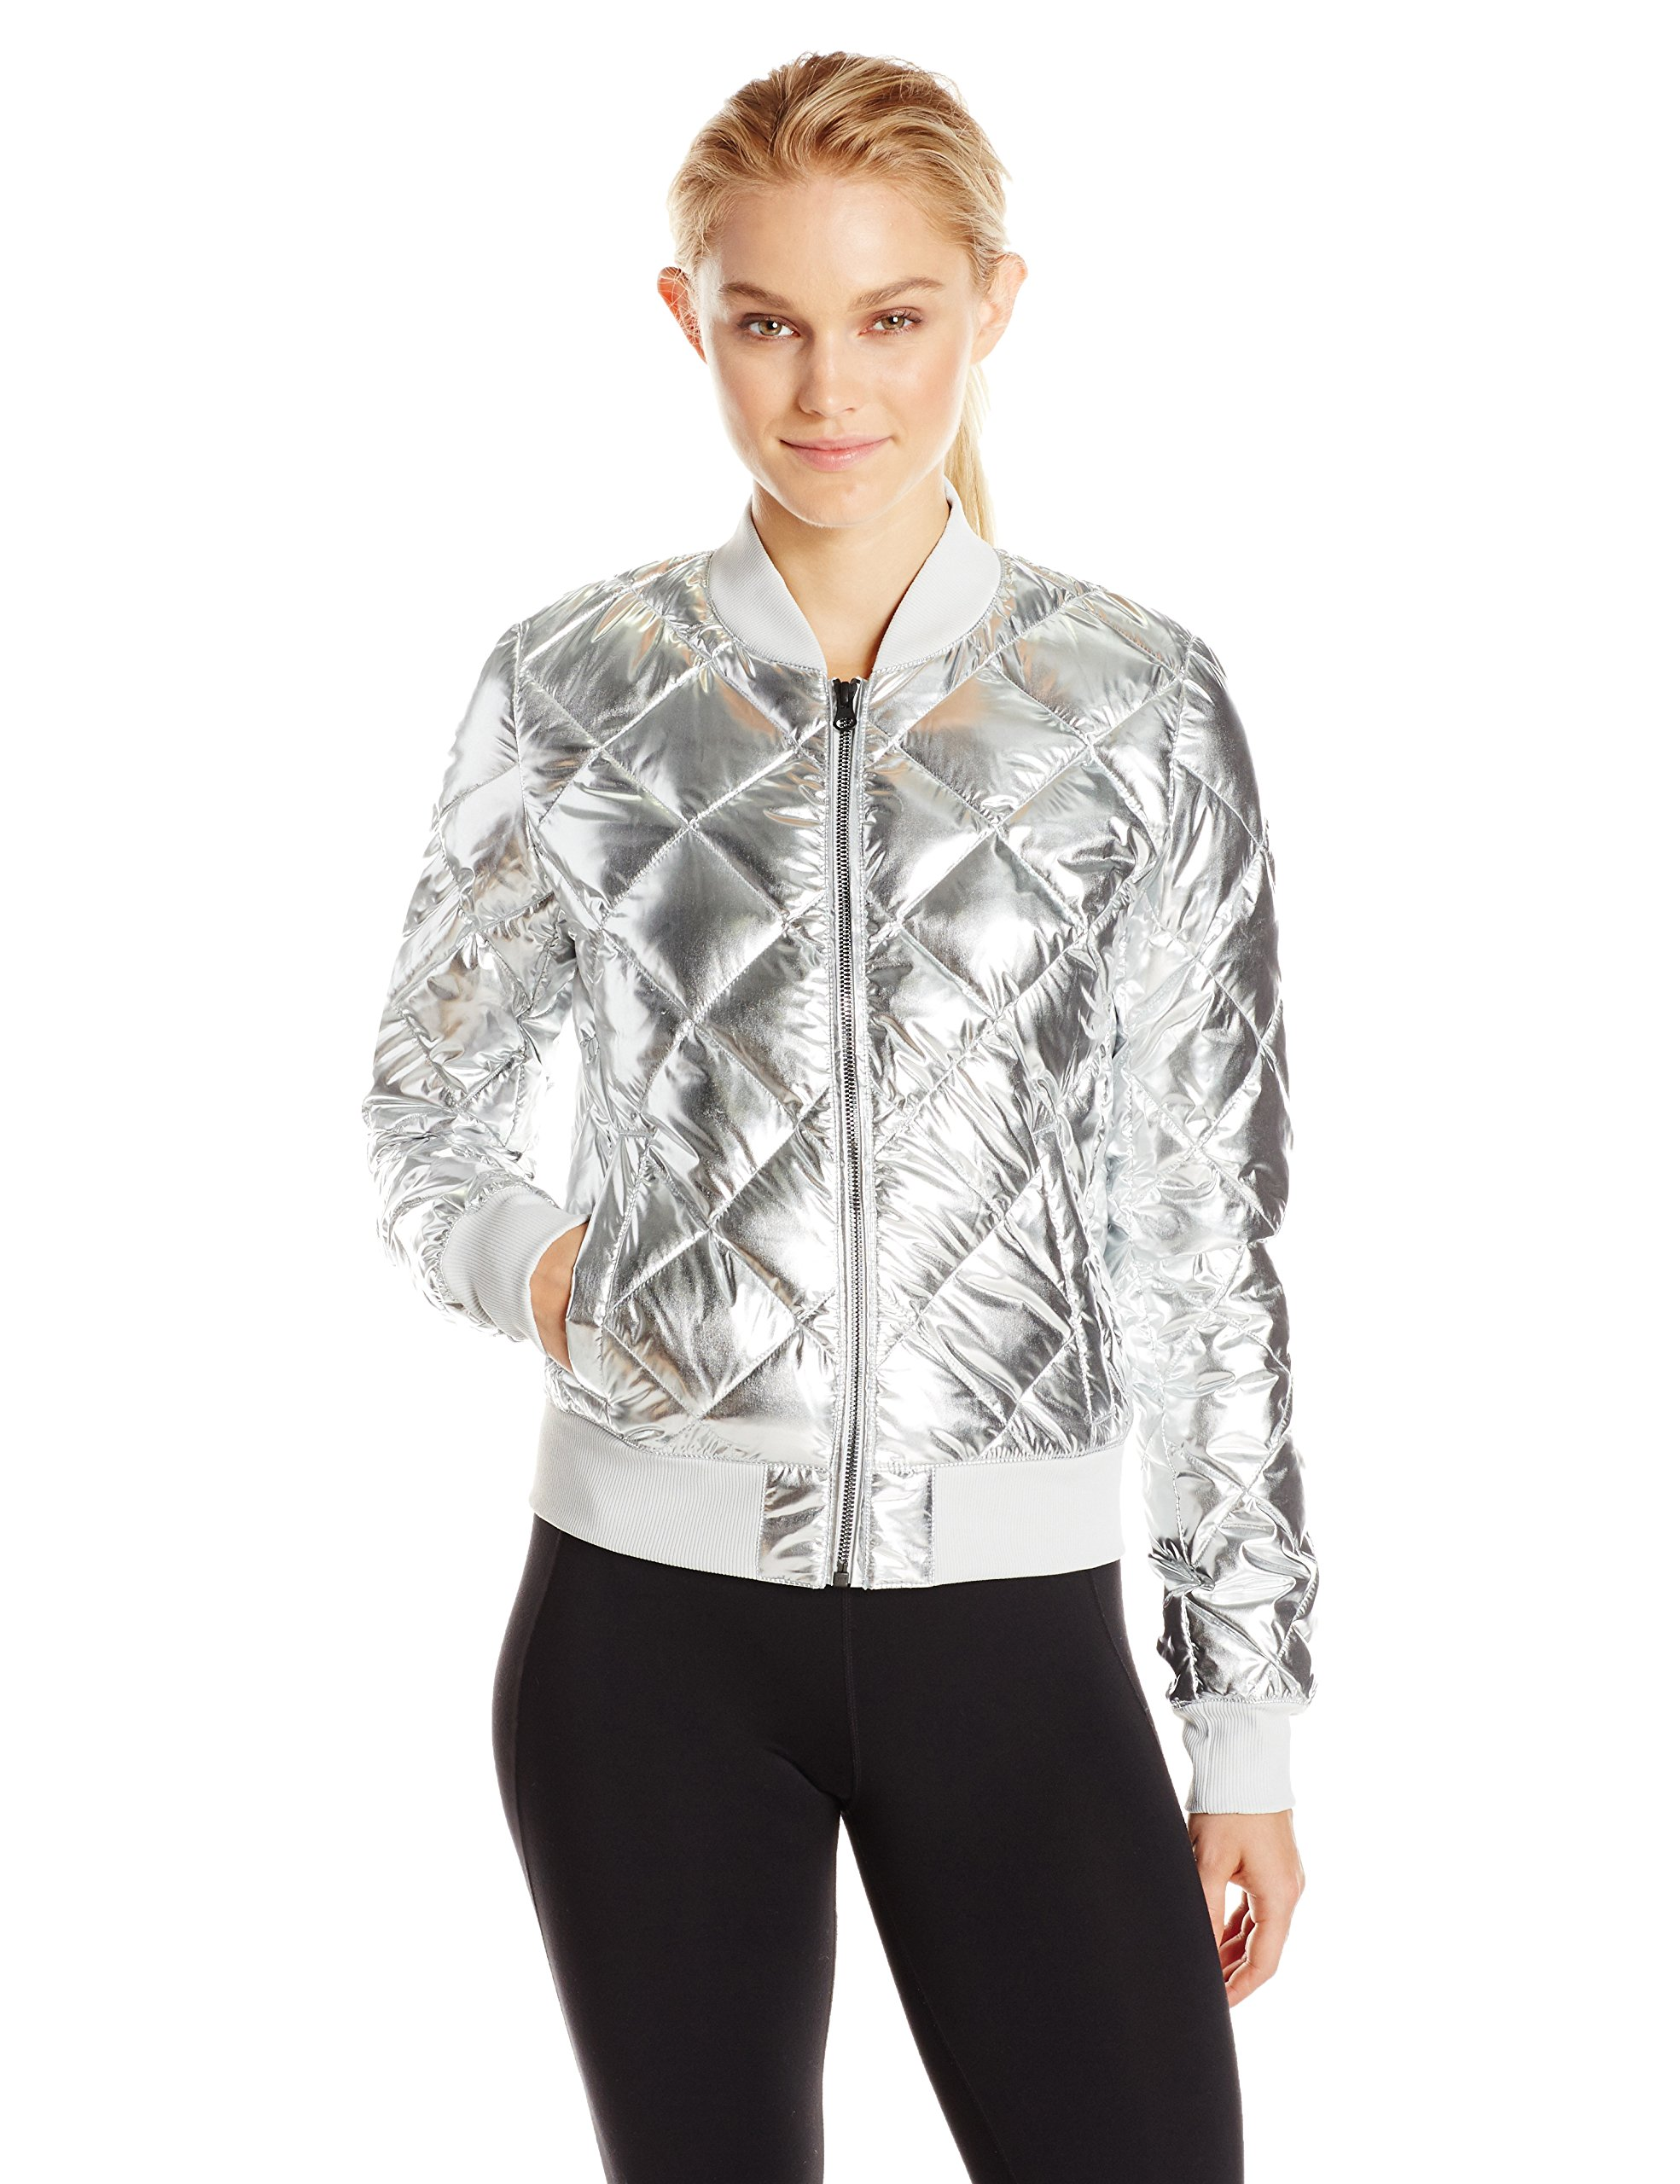 Alo Yoga Women's Idol Jacket, Silver, S by Alo Yoga